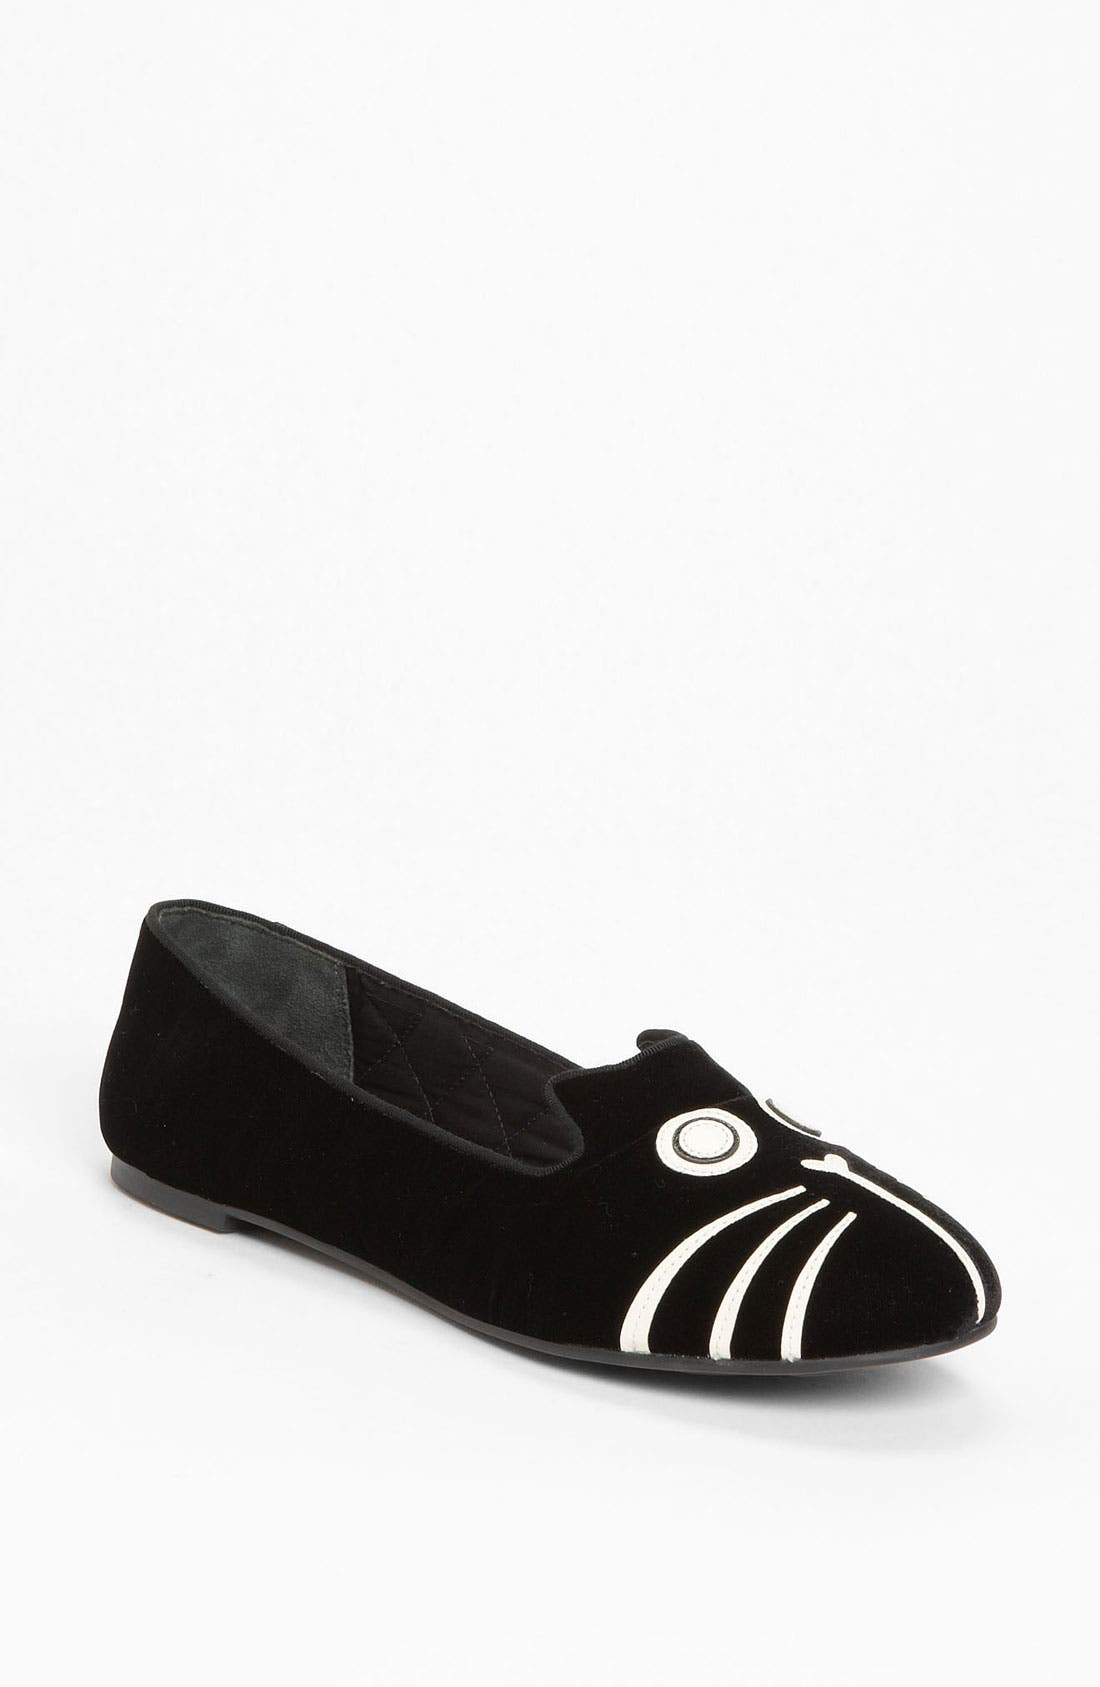 Alternate Image 1 Selected - MARC BY MARC JACOBS 'Friends of Mine' Loafer